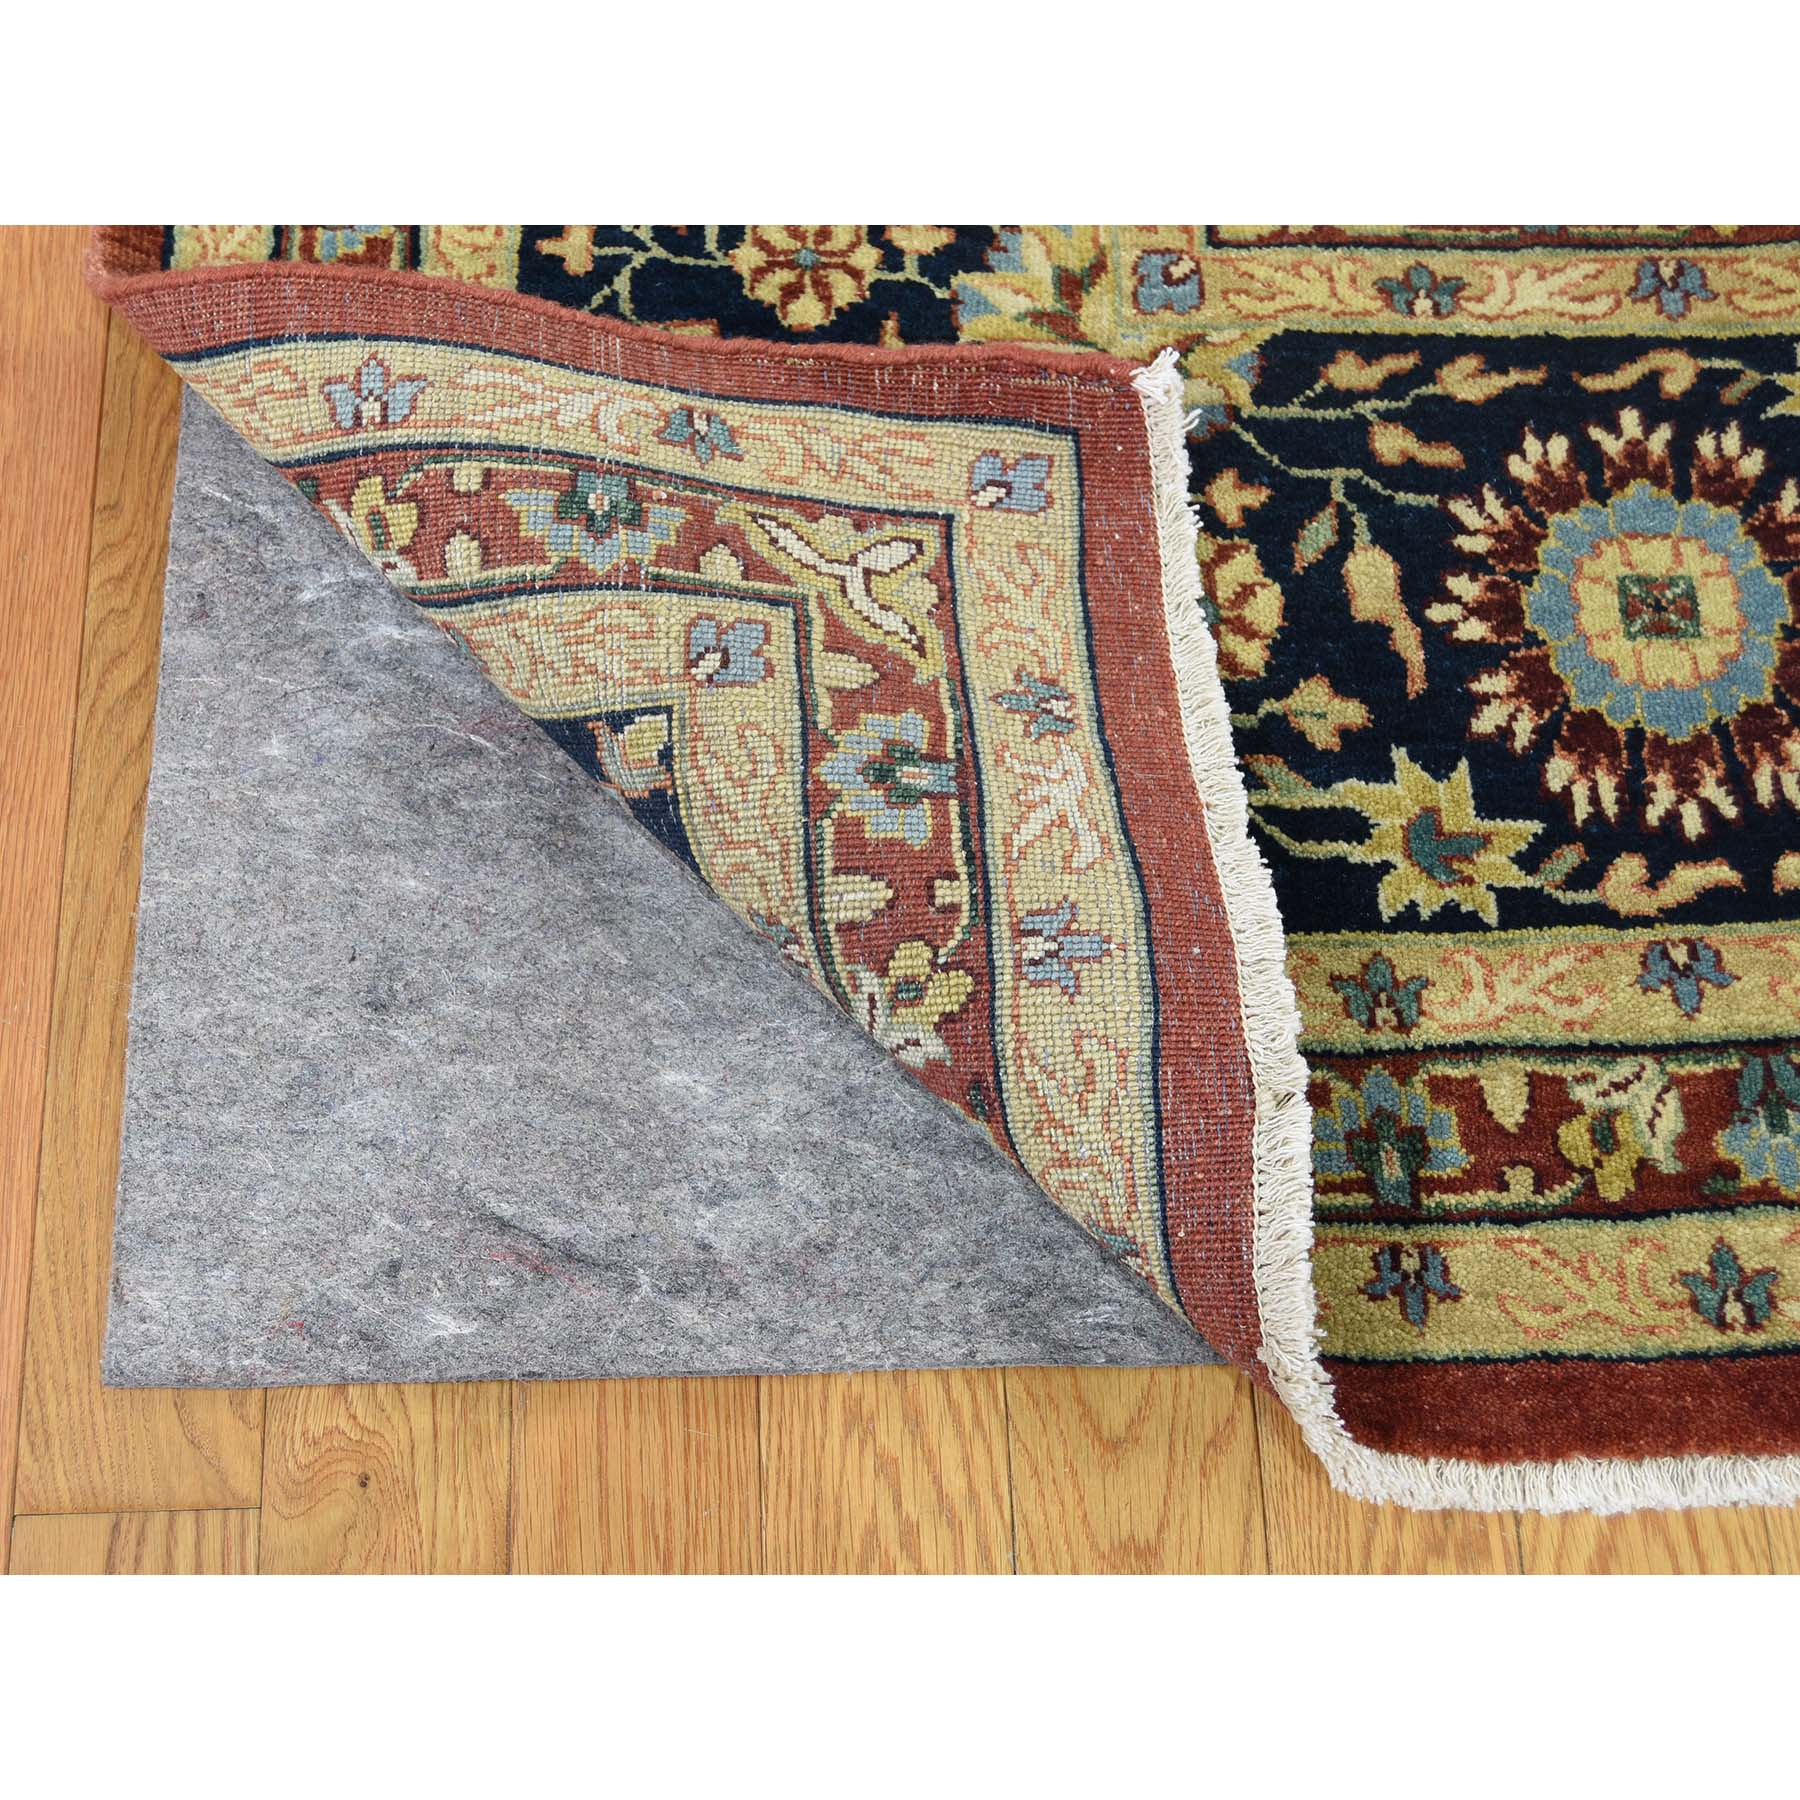 10-x14- Kashan Revival 100 Percent Wool Hand-Knotted Oriental Rug